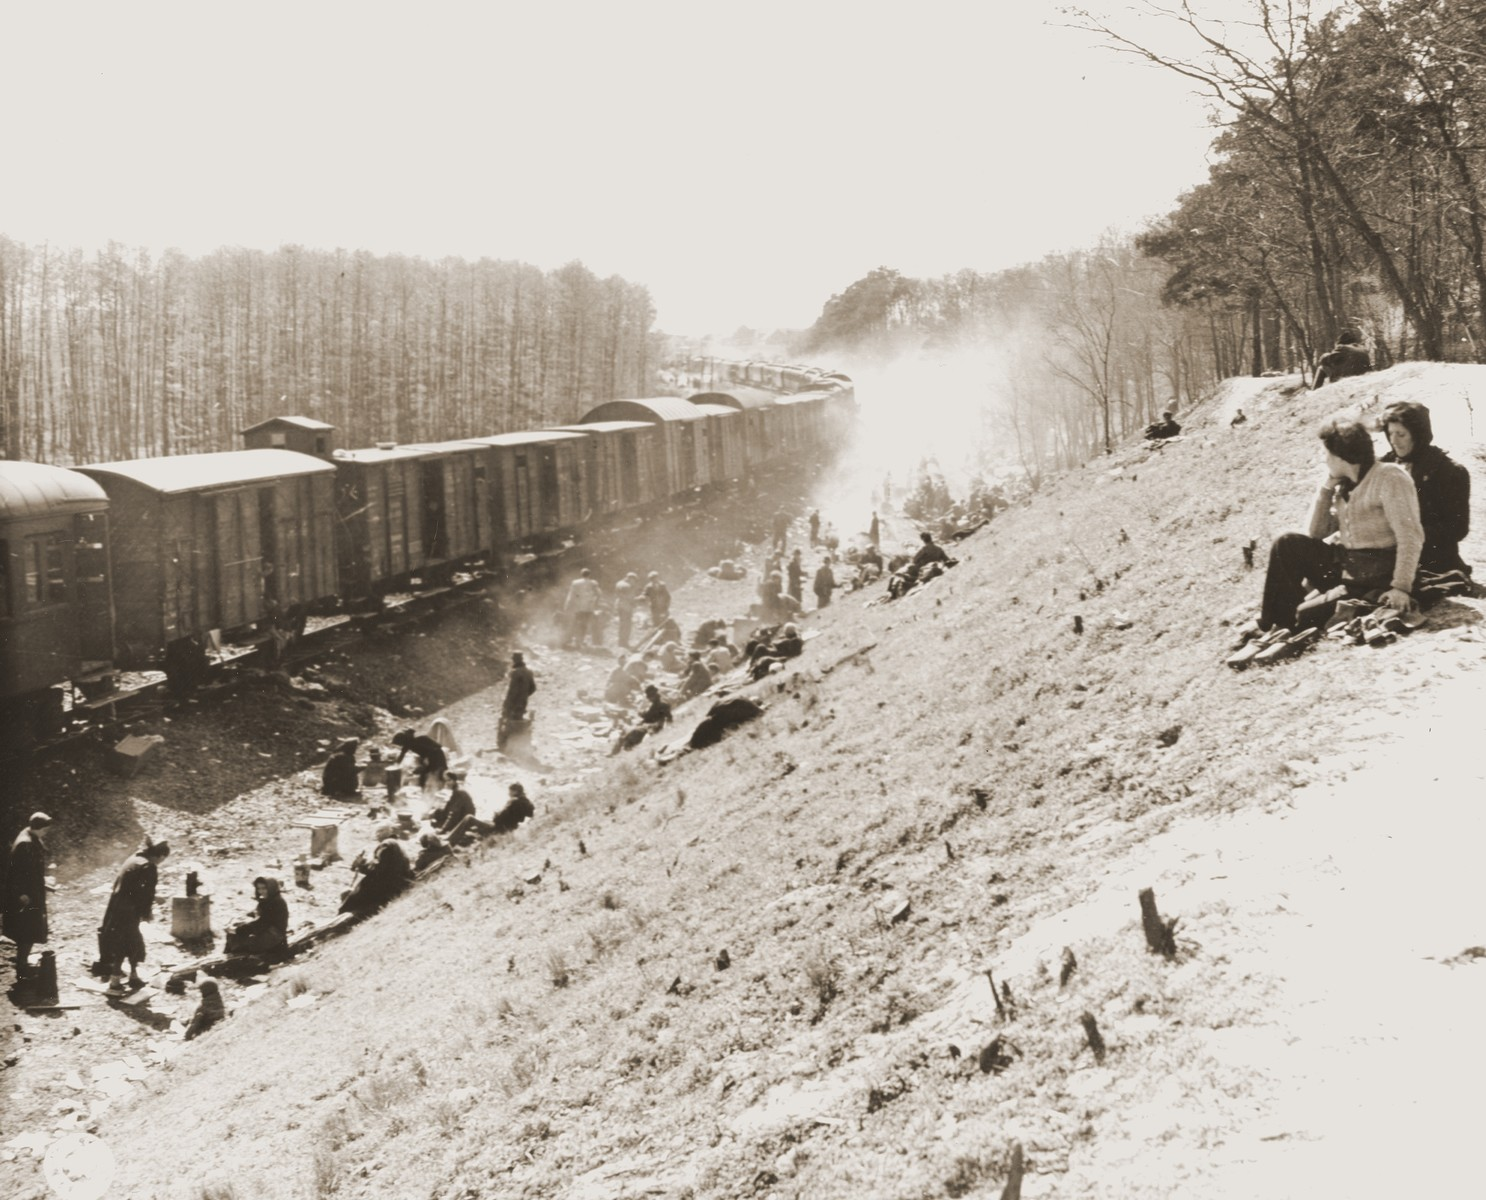 Survivors rest on an embankment next to a stopped train.  Among those liberated was Lisette Lamon.